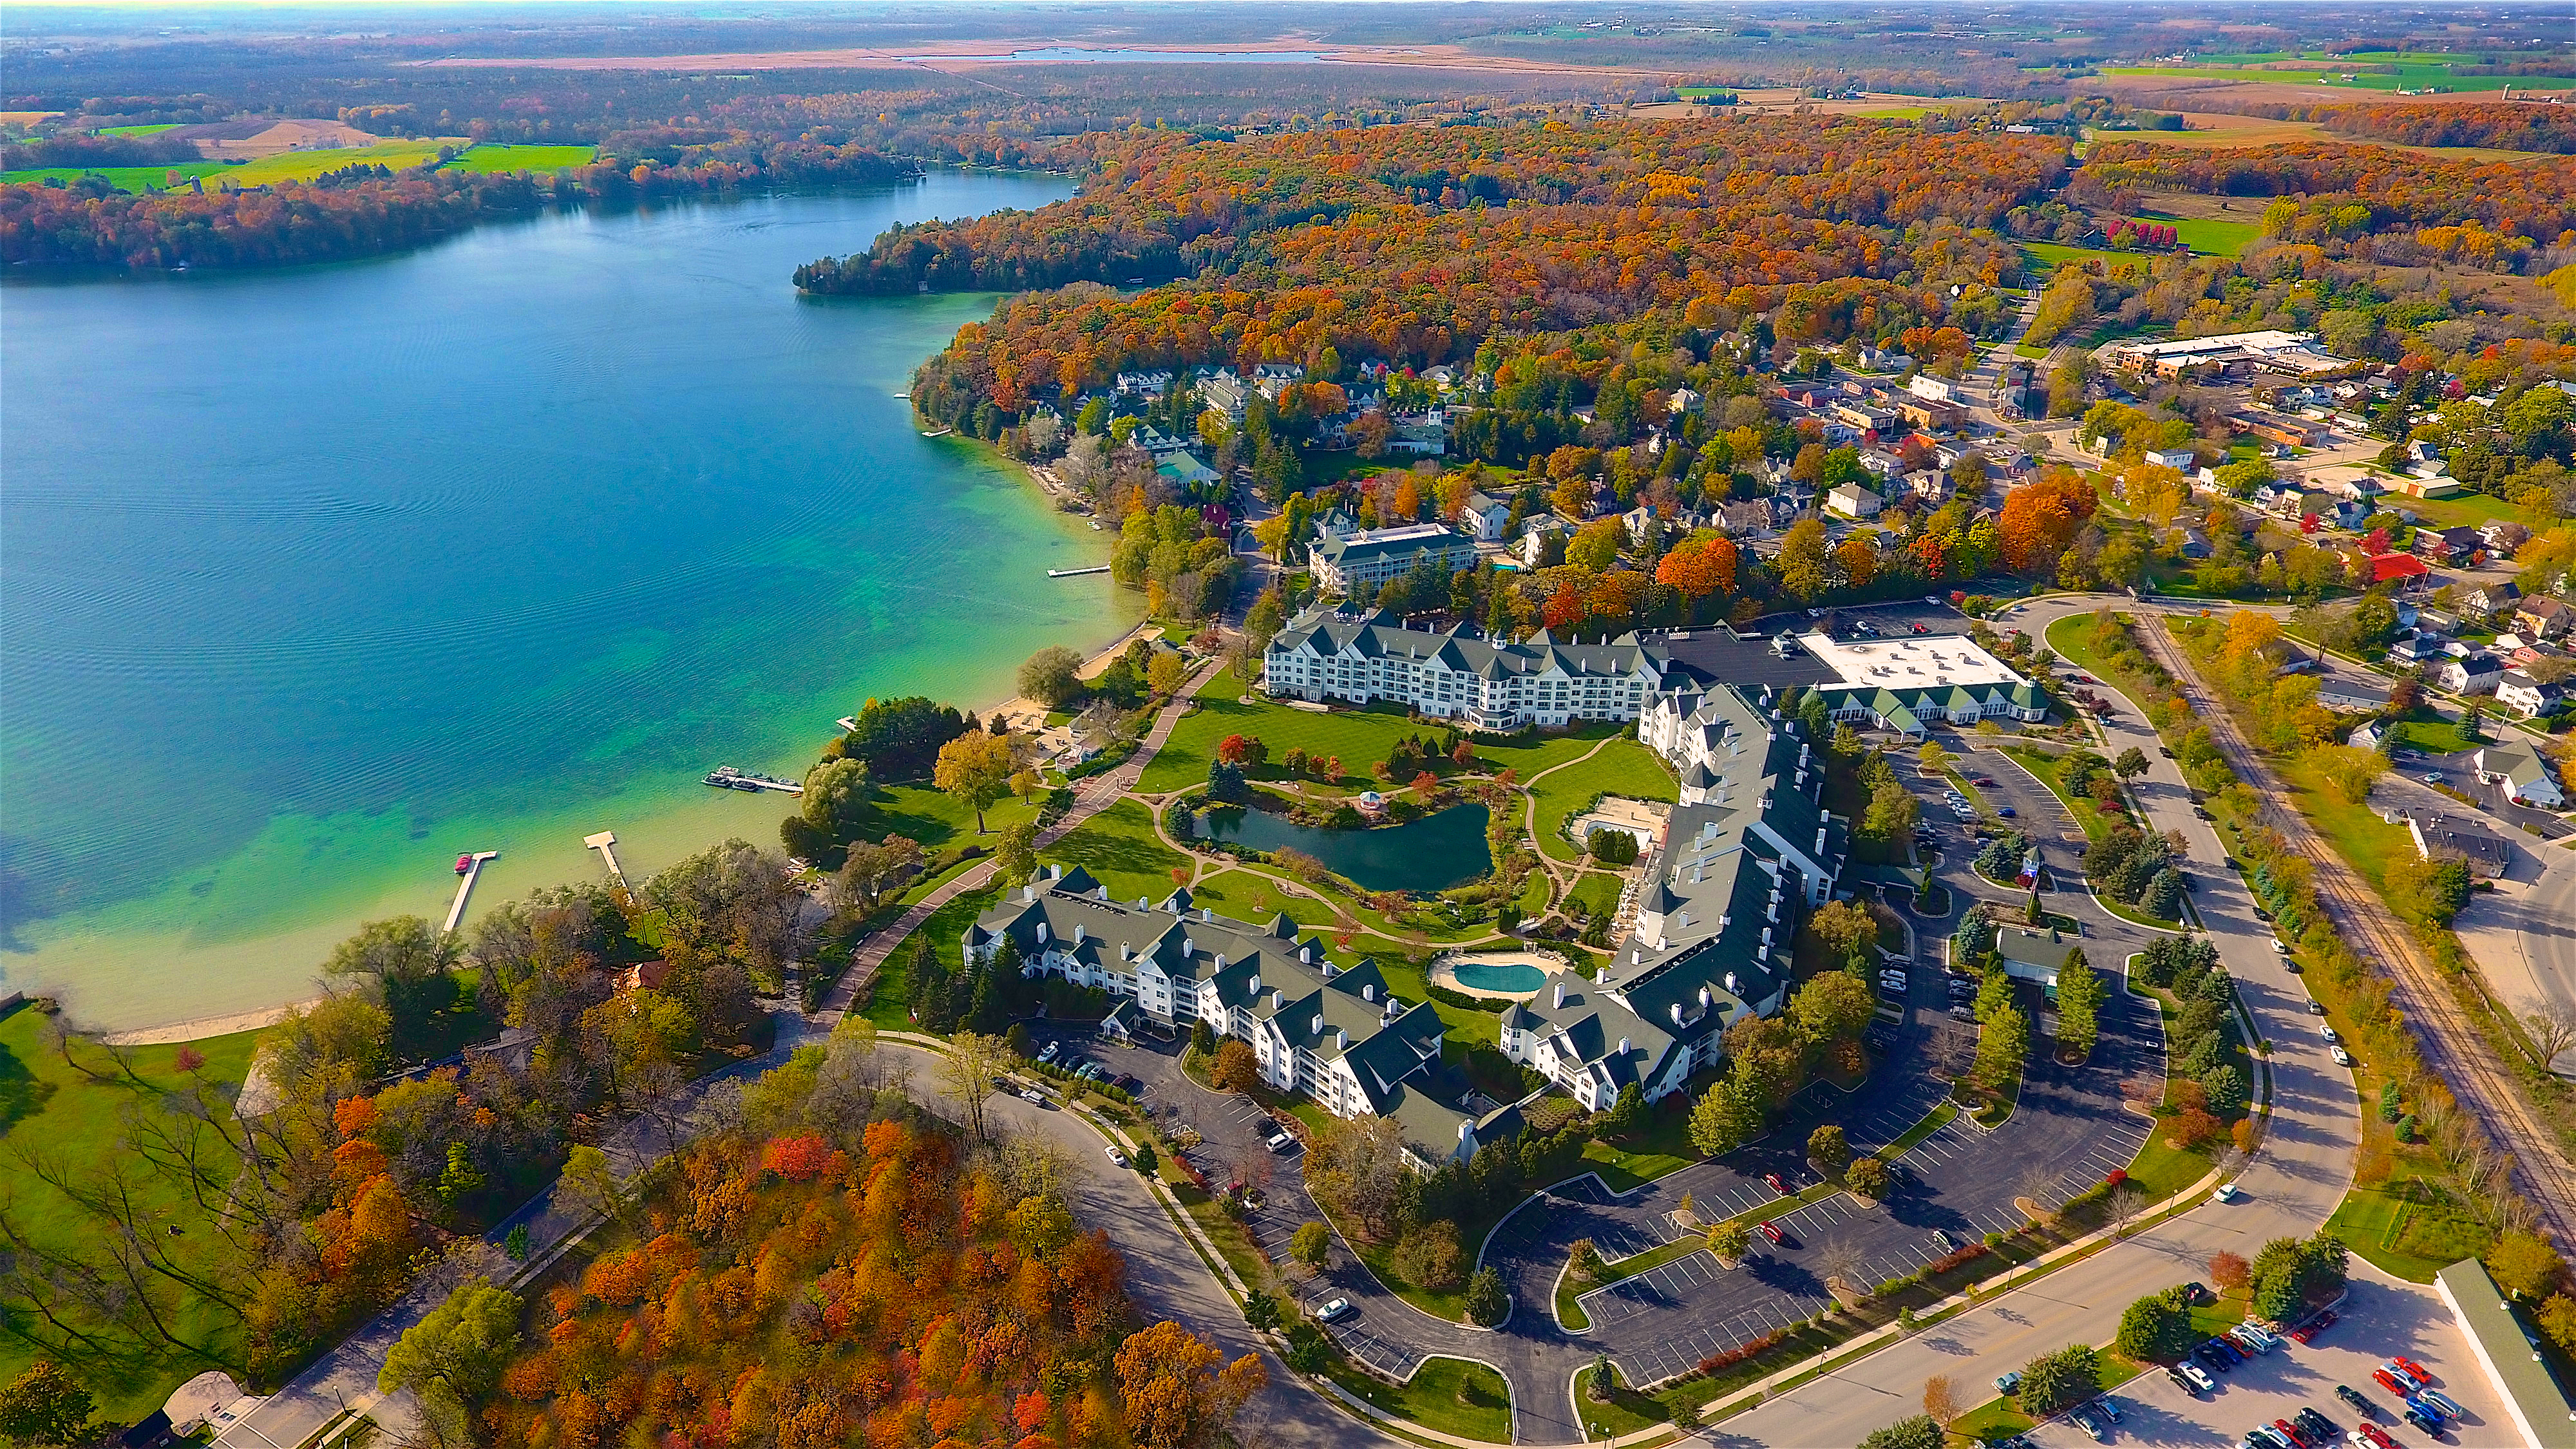 Aerial view of The Osthoff Resort in Wisconsin in the fall - TravelingMom